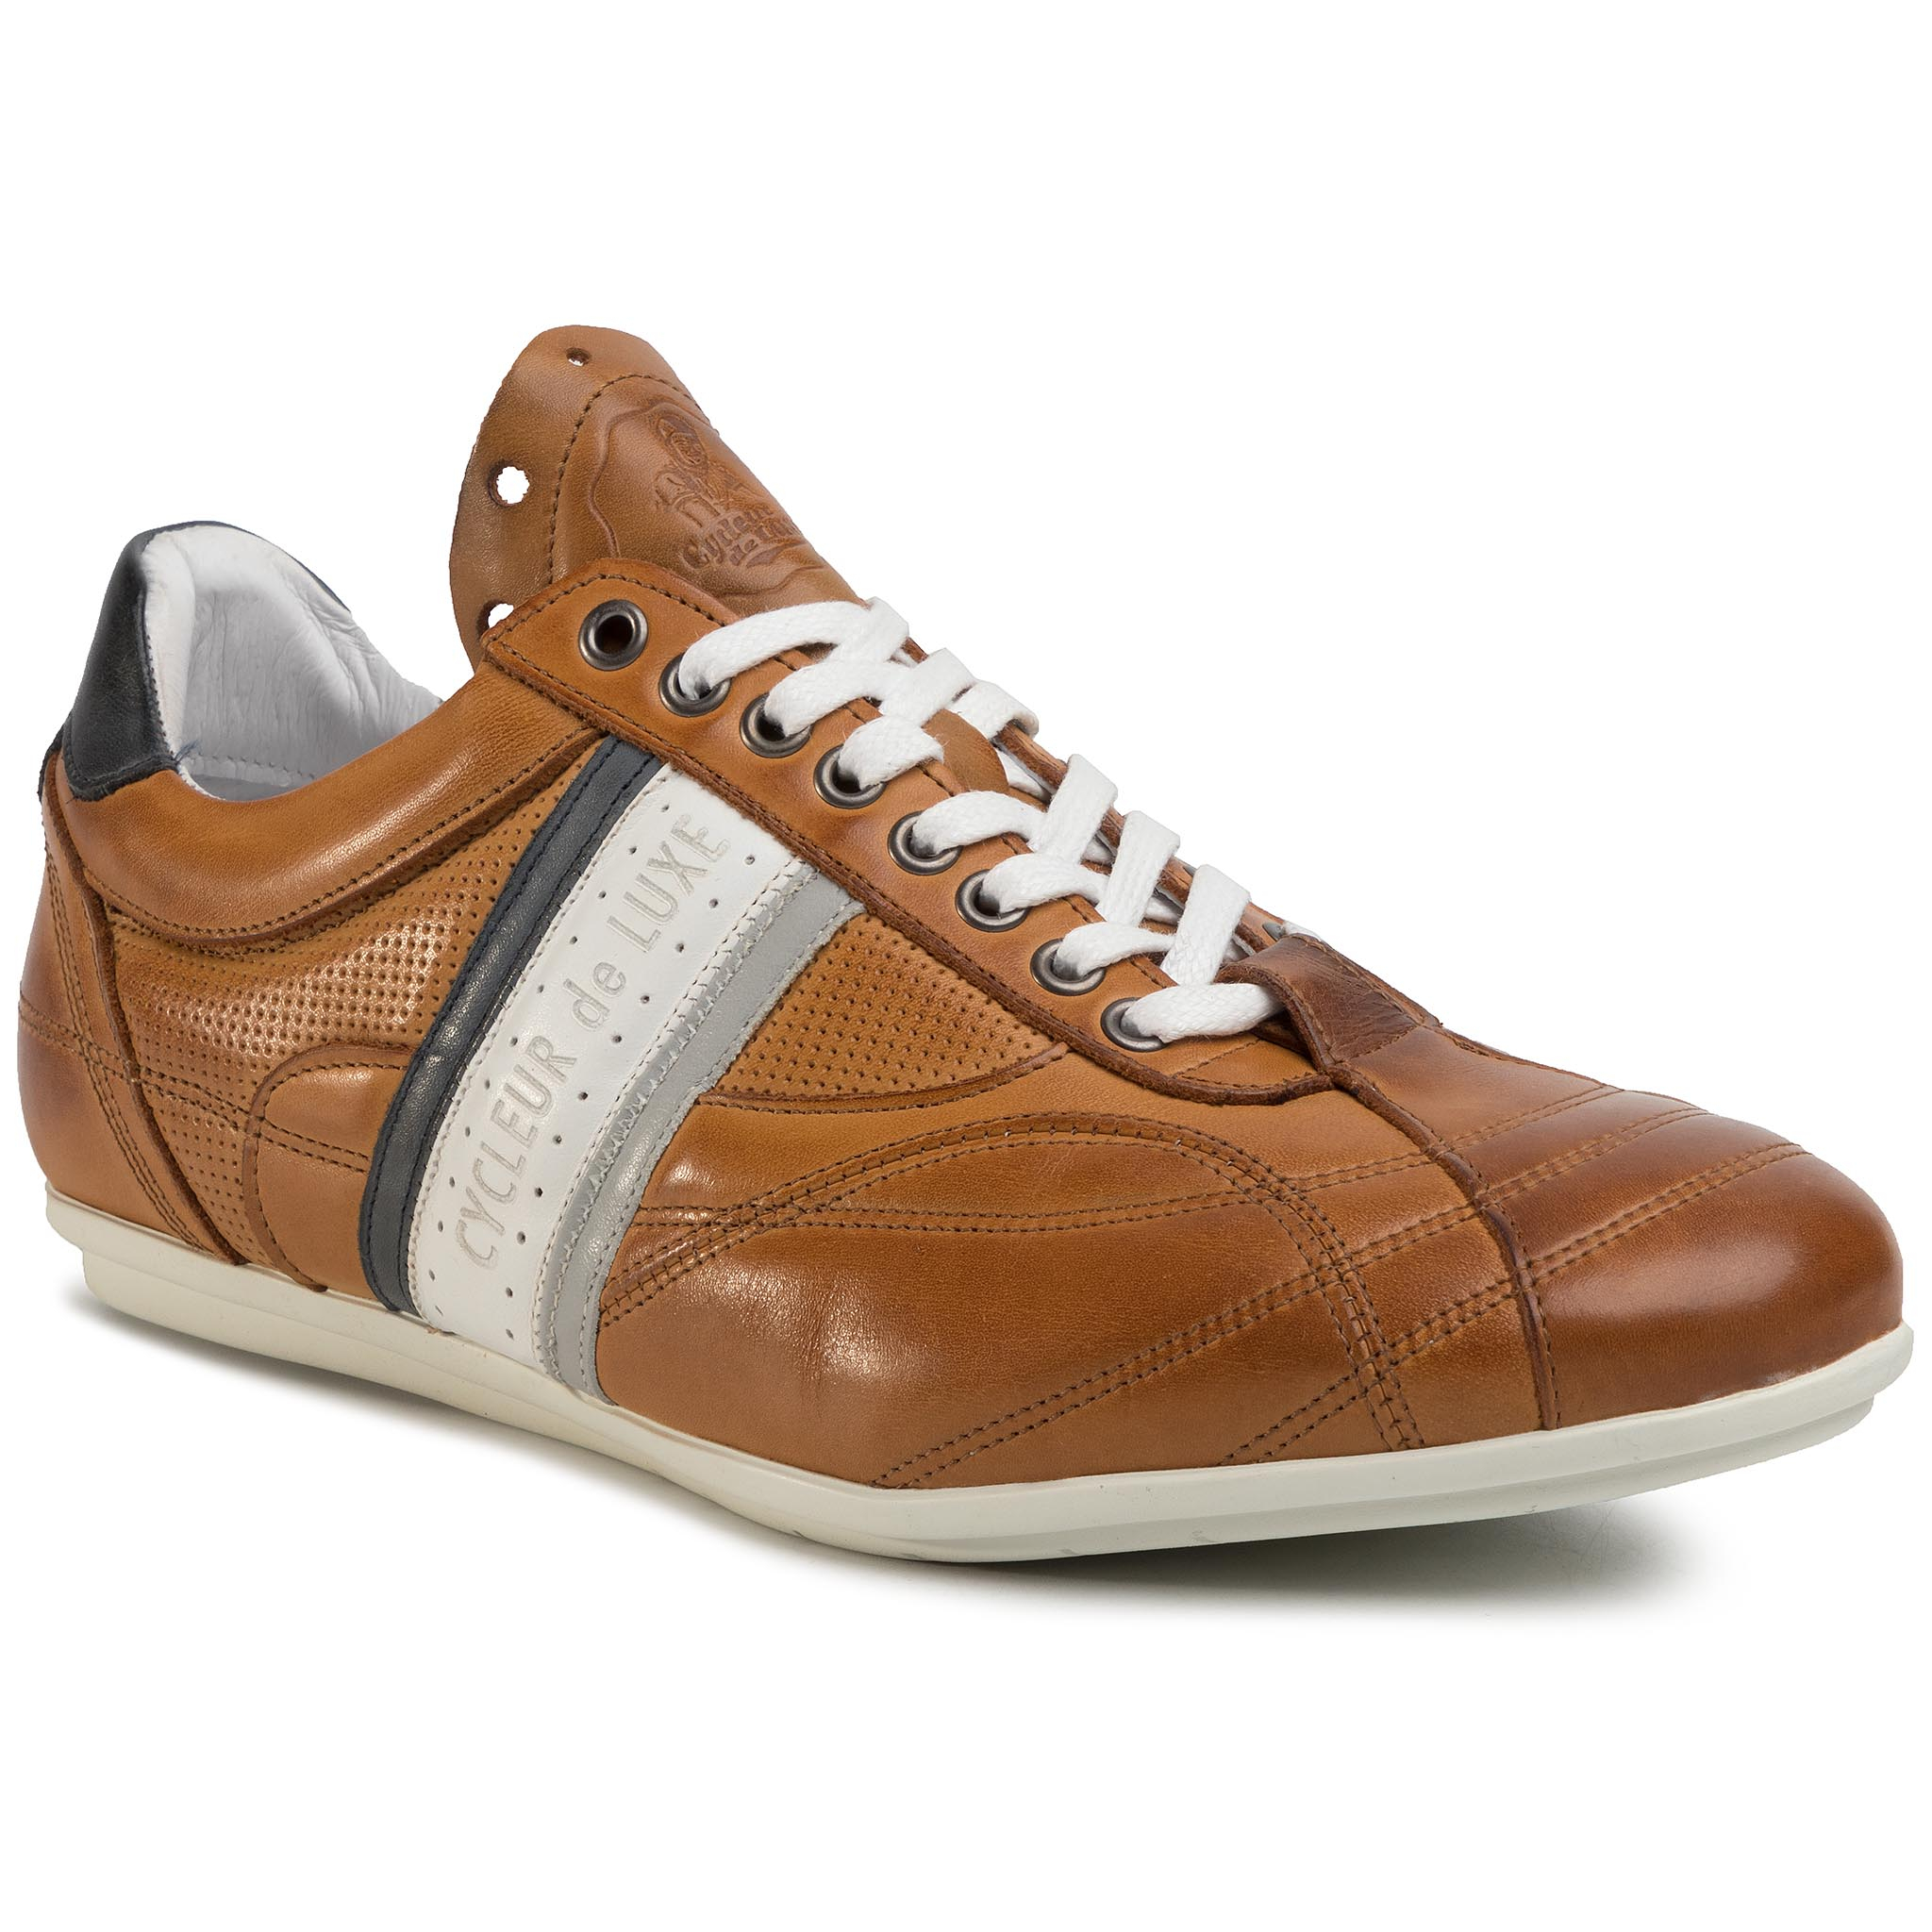 Sneakers CYCLEUR DE LUXE - Crush City CDLM201272 Cognac